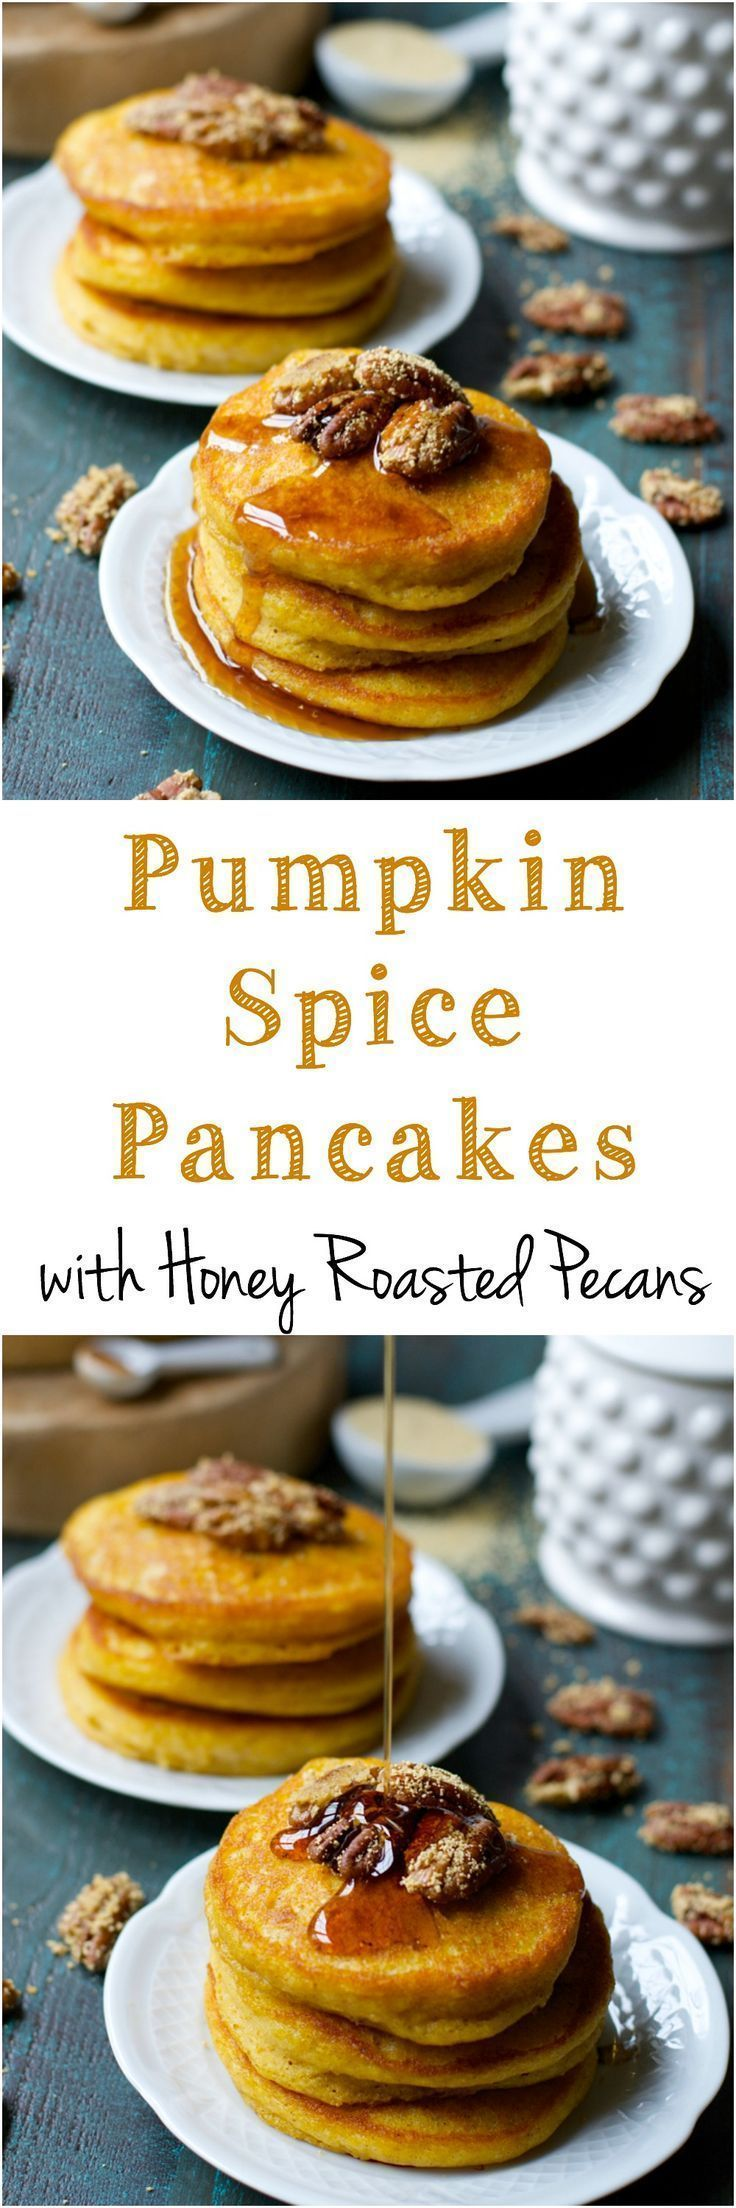 Ultra fluffy Pumpkin Spice Pancakes are topped with Honey Roasted Pecans and…